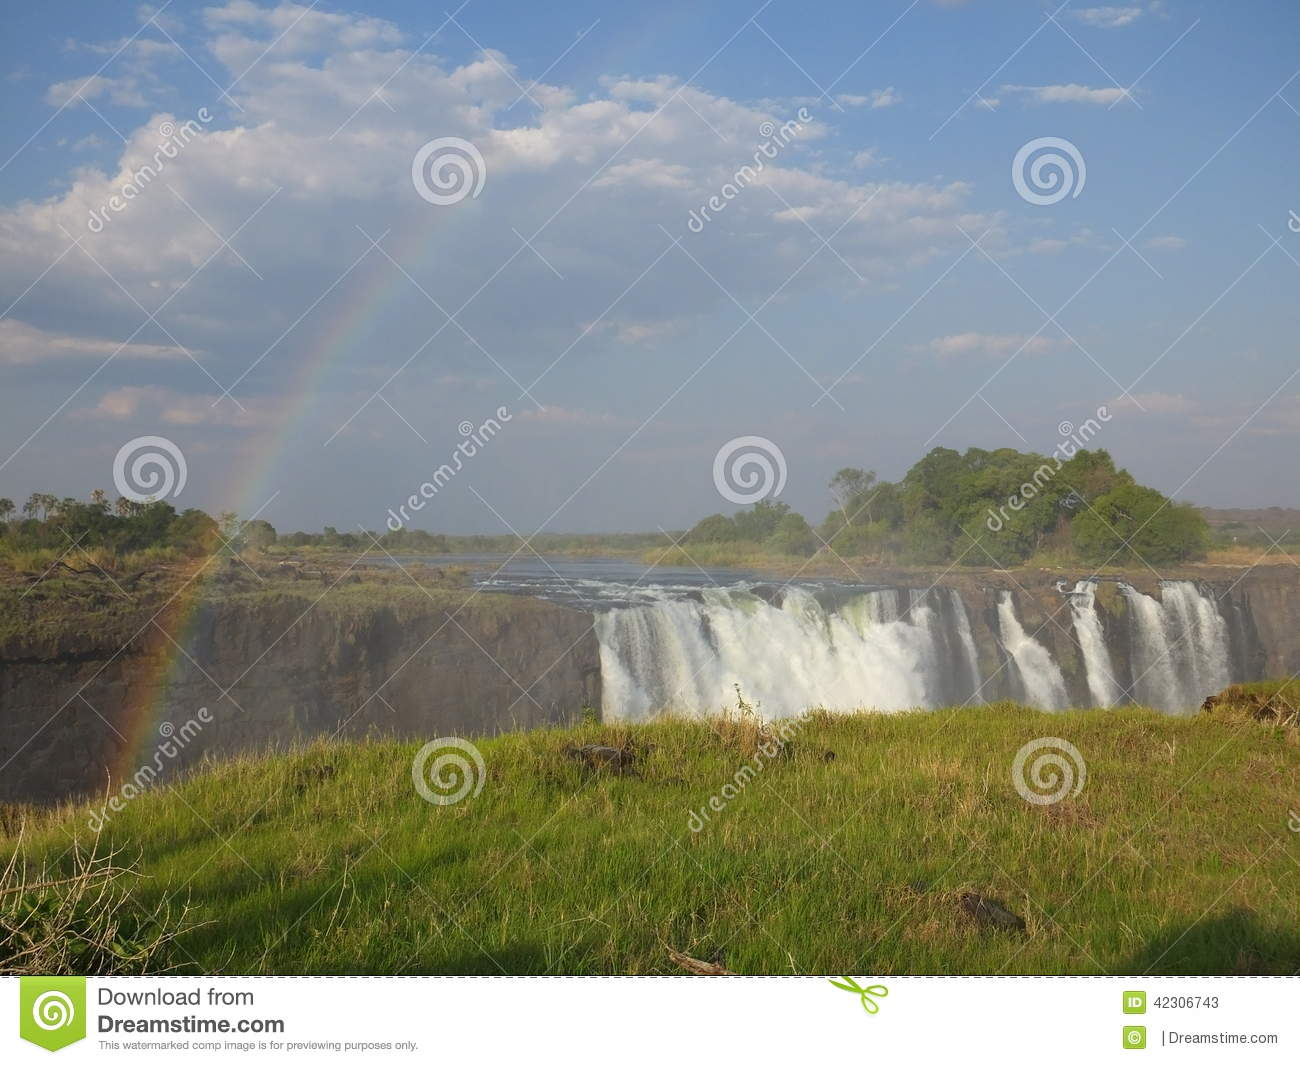 The Mighty Victoria Falls between Zambia and Zimbabwe